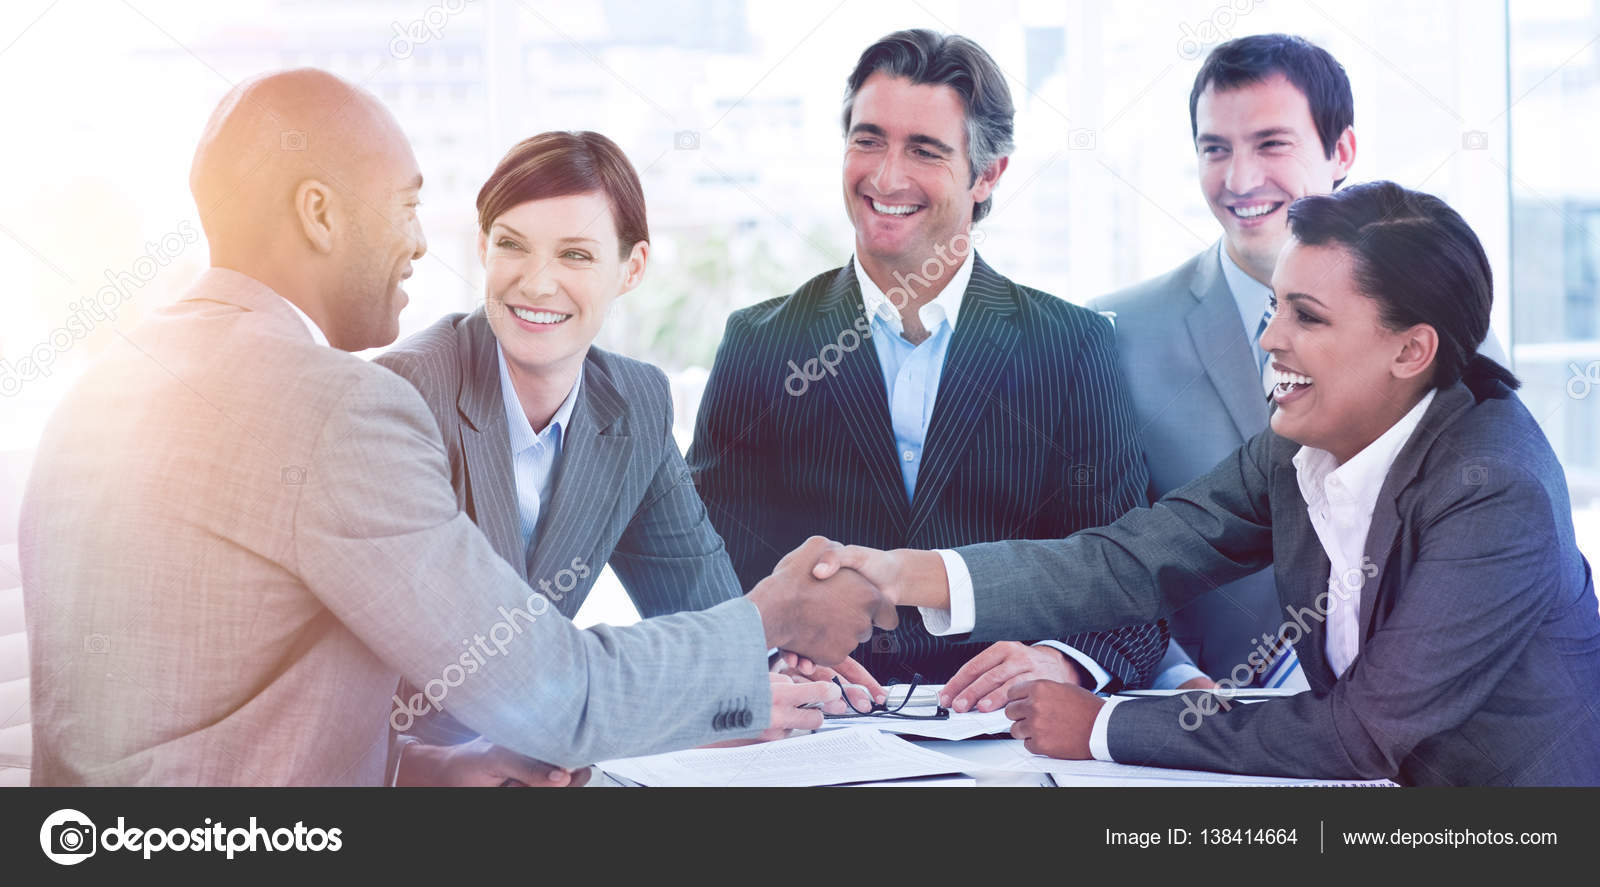 Business people greeting each other stock photo wavebreakmedia business people greeting each other in a meeting photo by wavebreakmedia m4hsunfo